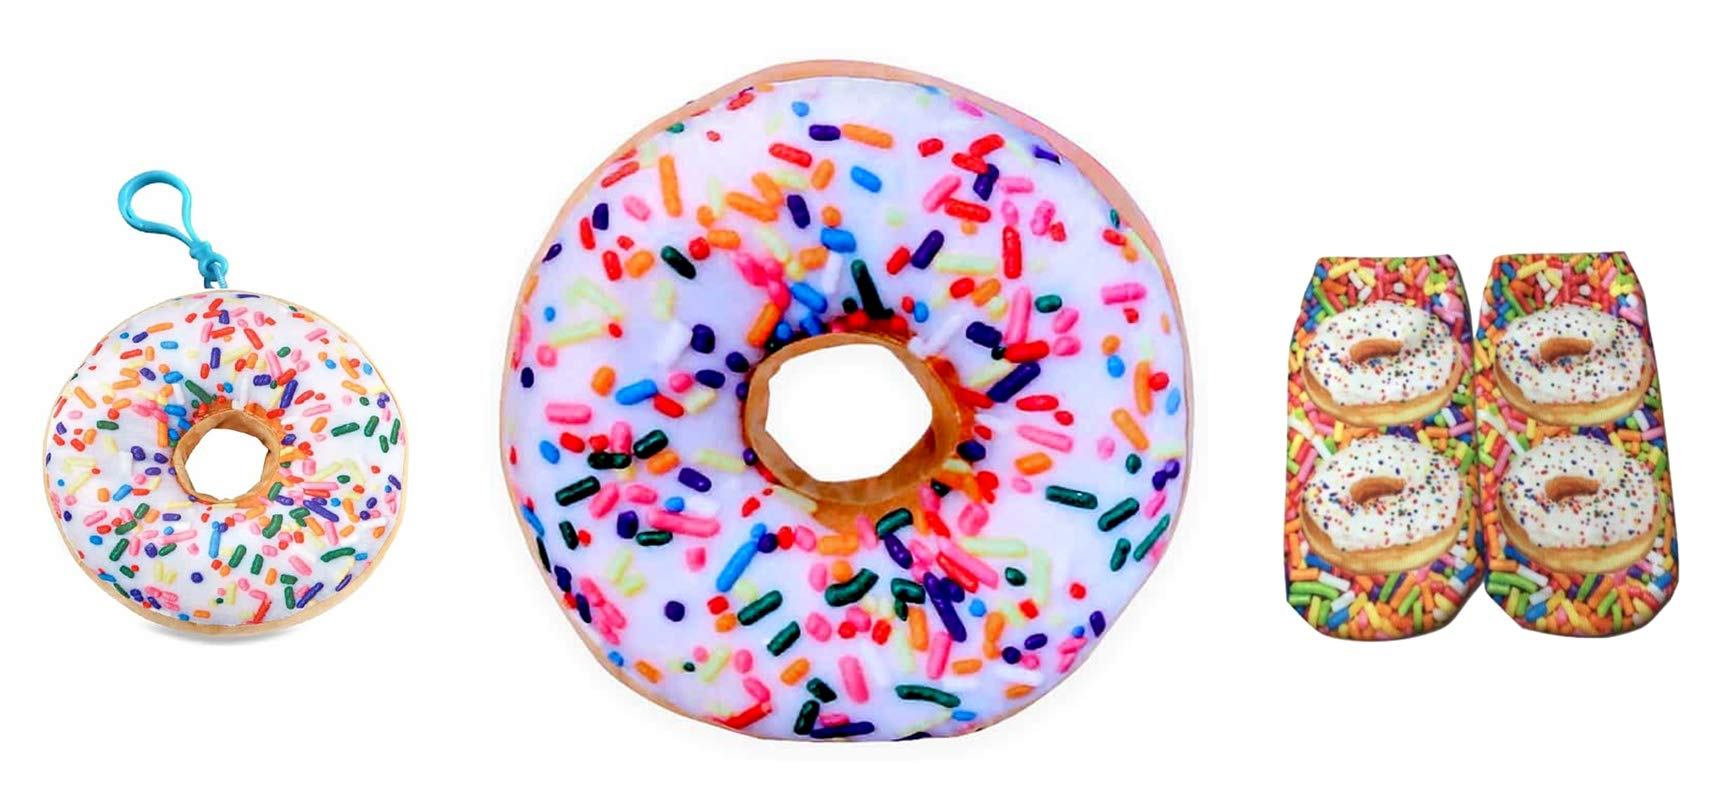 High Values 16 Inch White Sprinkle Donut Pillow Cushion with Donut Clip On and Ankle Socks Gift Set - Vanilla by High Values